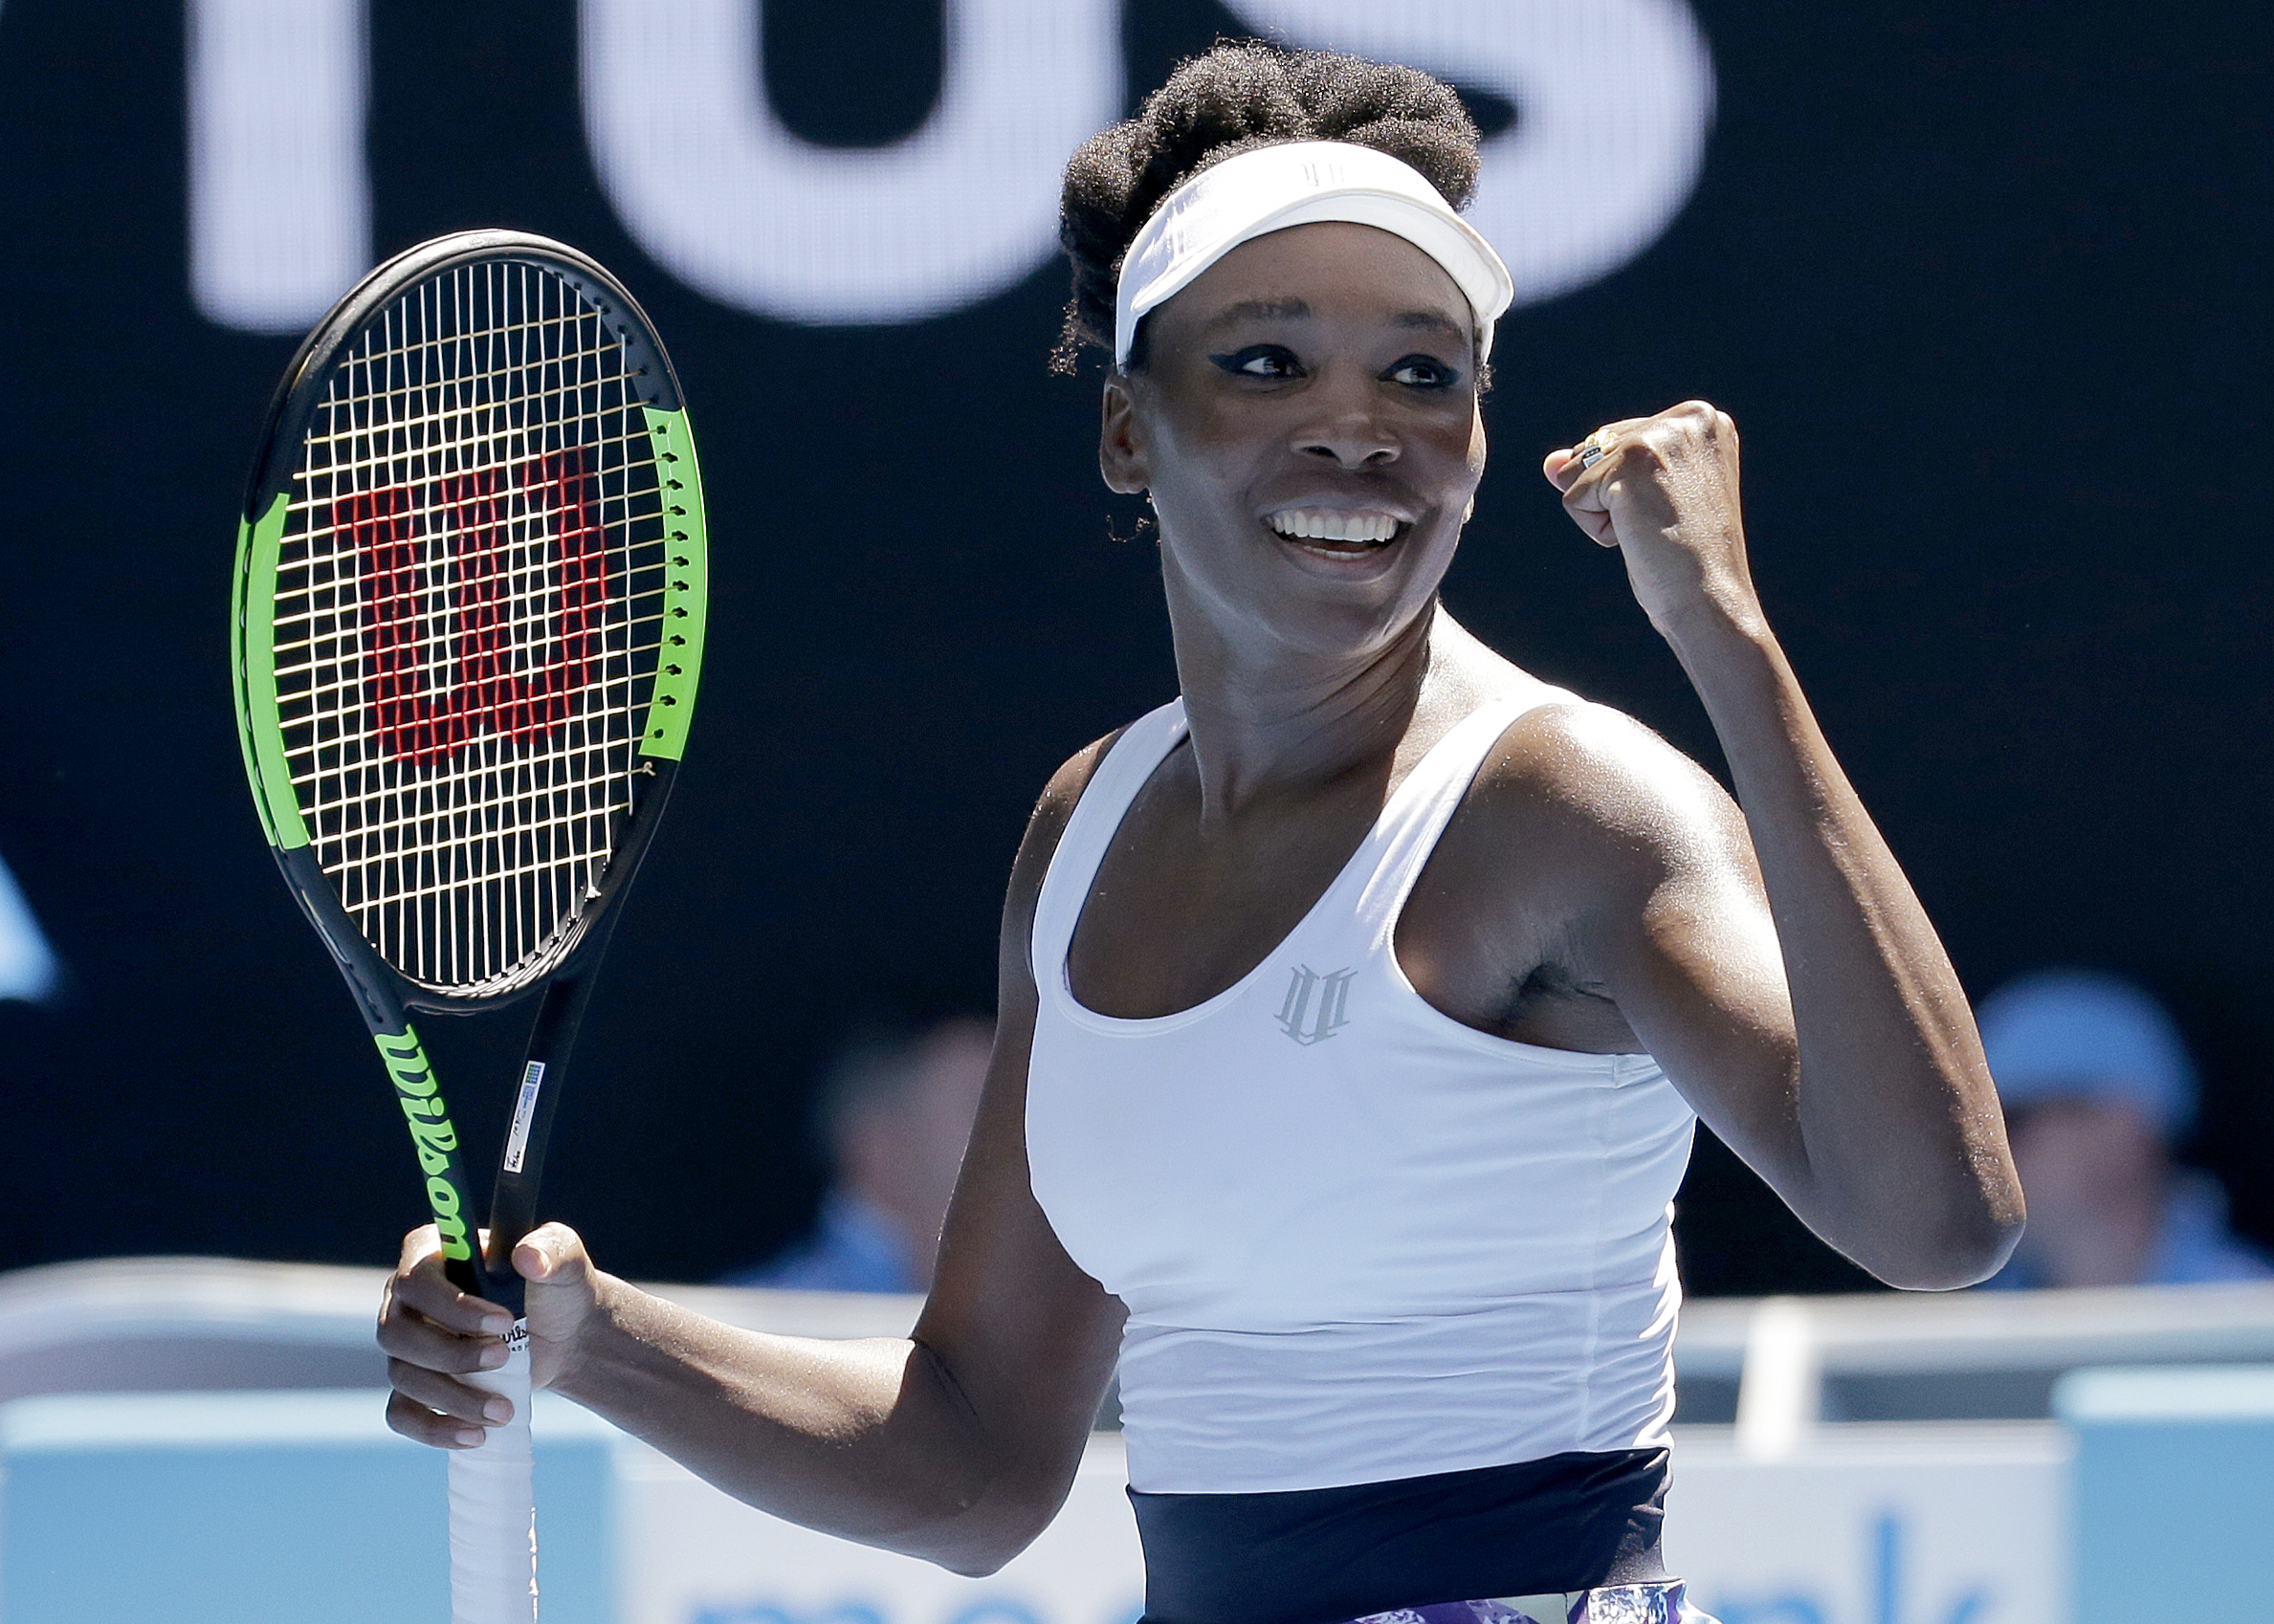 United States' Venus Williams celebrates after defeating Ukraine's Kateryna Kozlova in their first round match the Australian Open tennis championships in Melbourne, Australia, Monday, Jan. 16, 2017. (AP Photo/Aaron Favila)